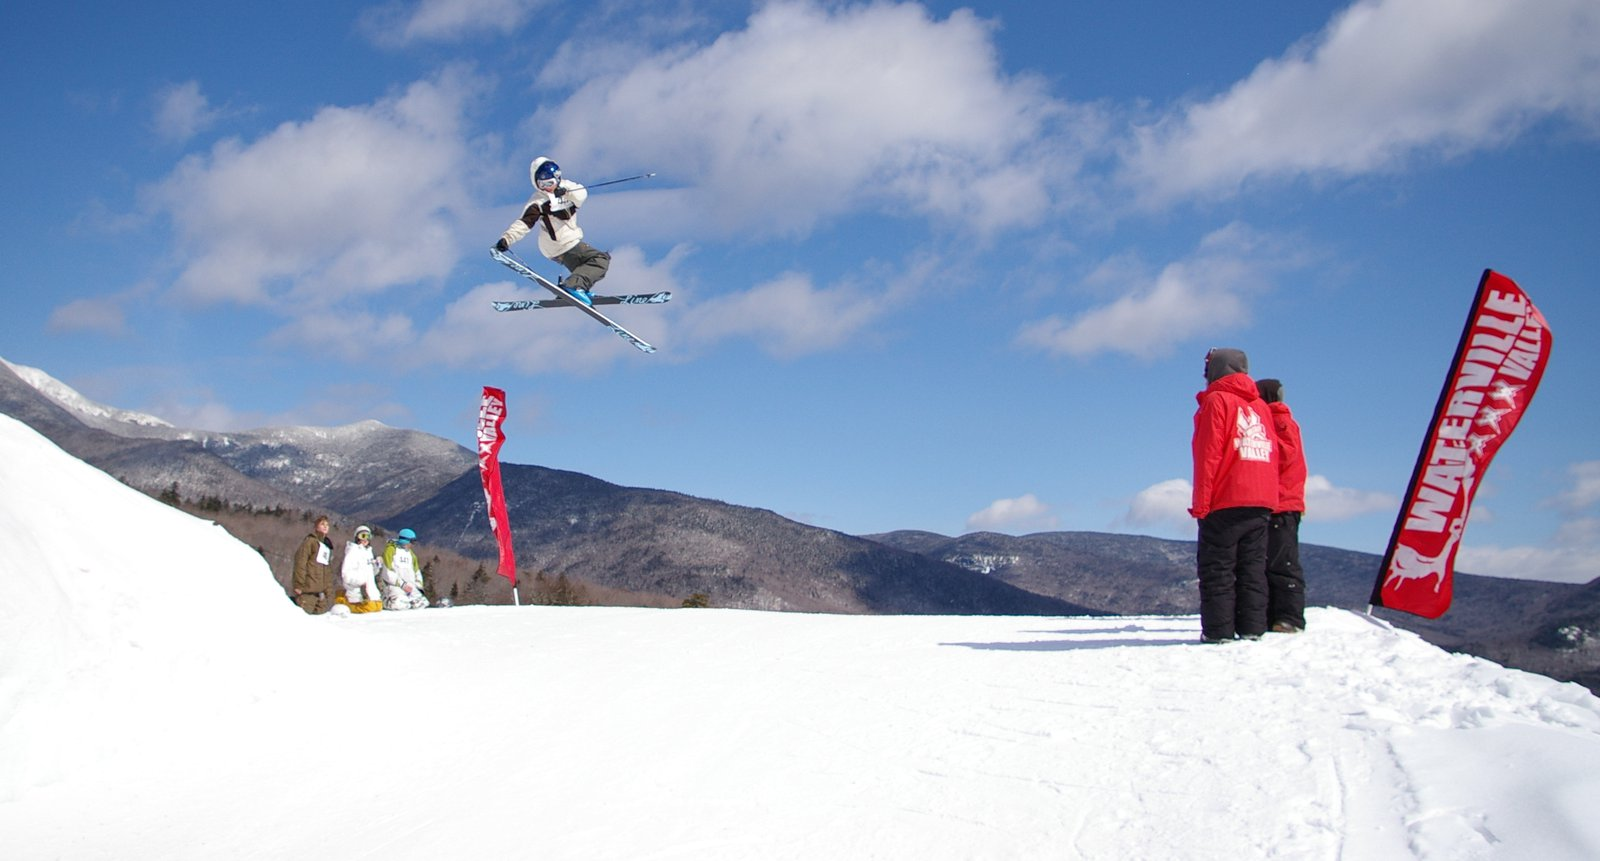 J5 at waterville